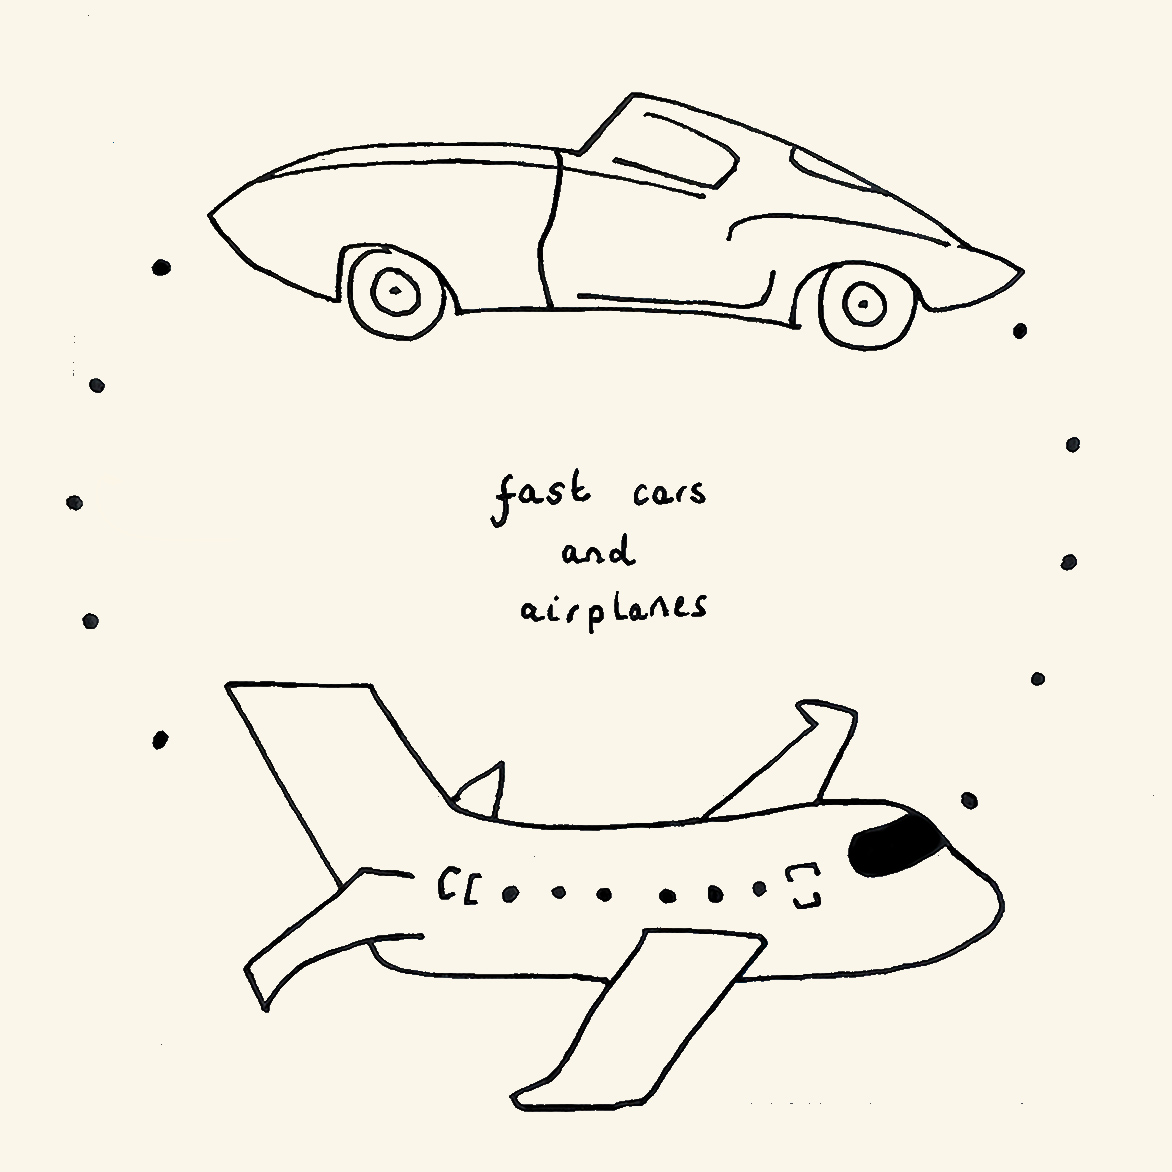 Ettie, Fast Cars and Airplanes